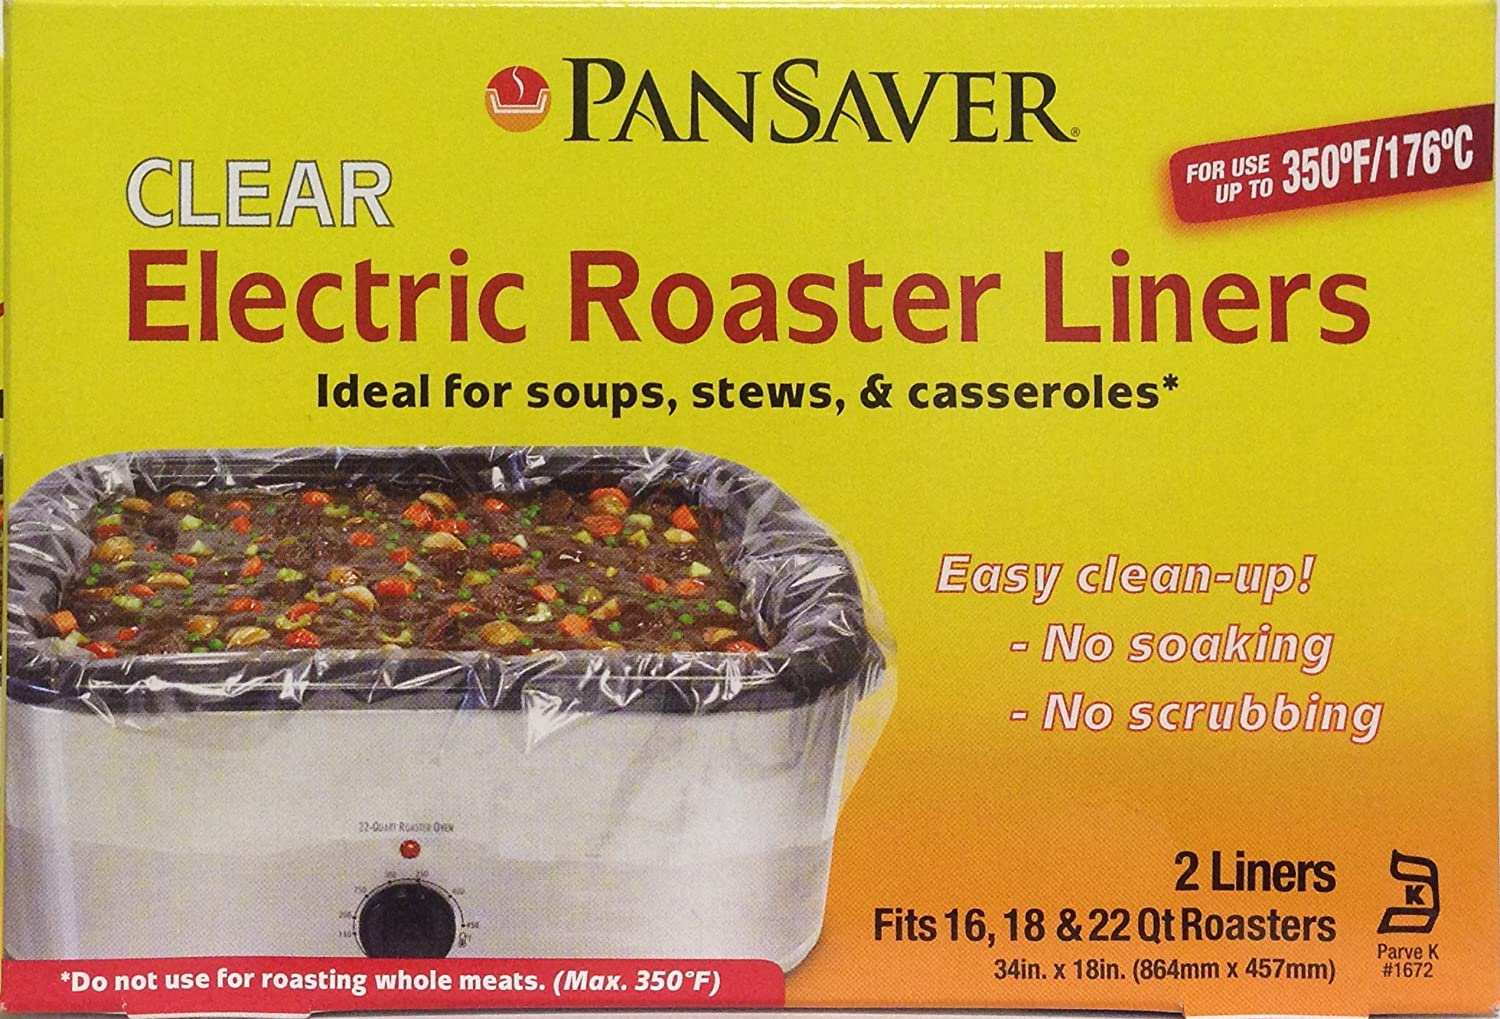 PanSaver Electric Roaster Liners, 1-pack (2 units) 1-pack (2 units) 42120